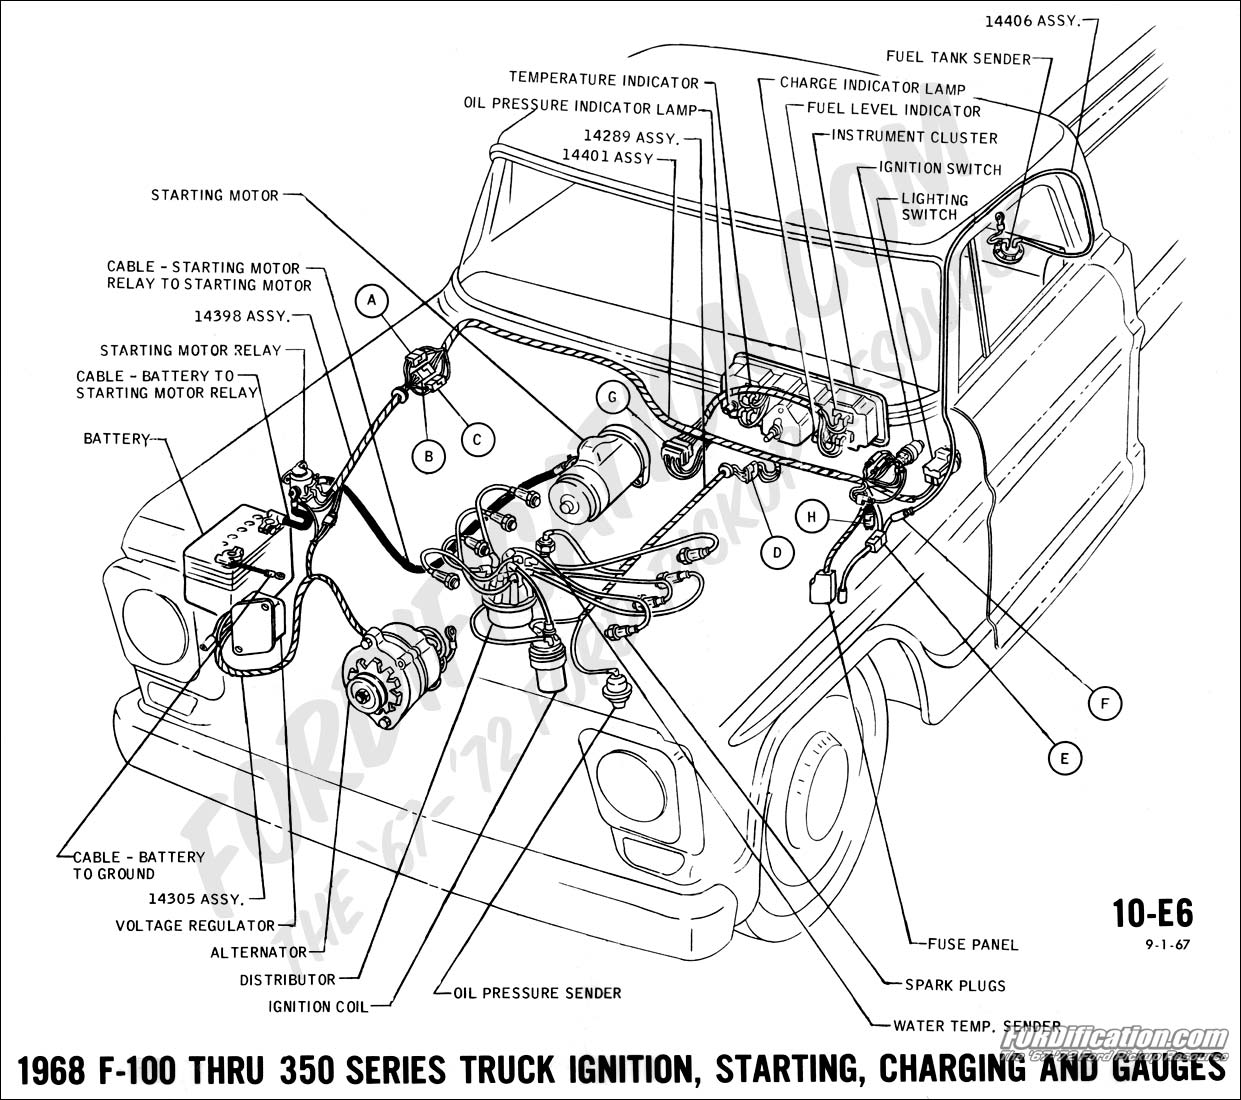 1969 Ford Bronco Fuel Tank Wiring Diagram Library Headlight Switch Chevy Truck